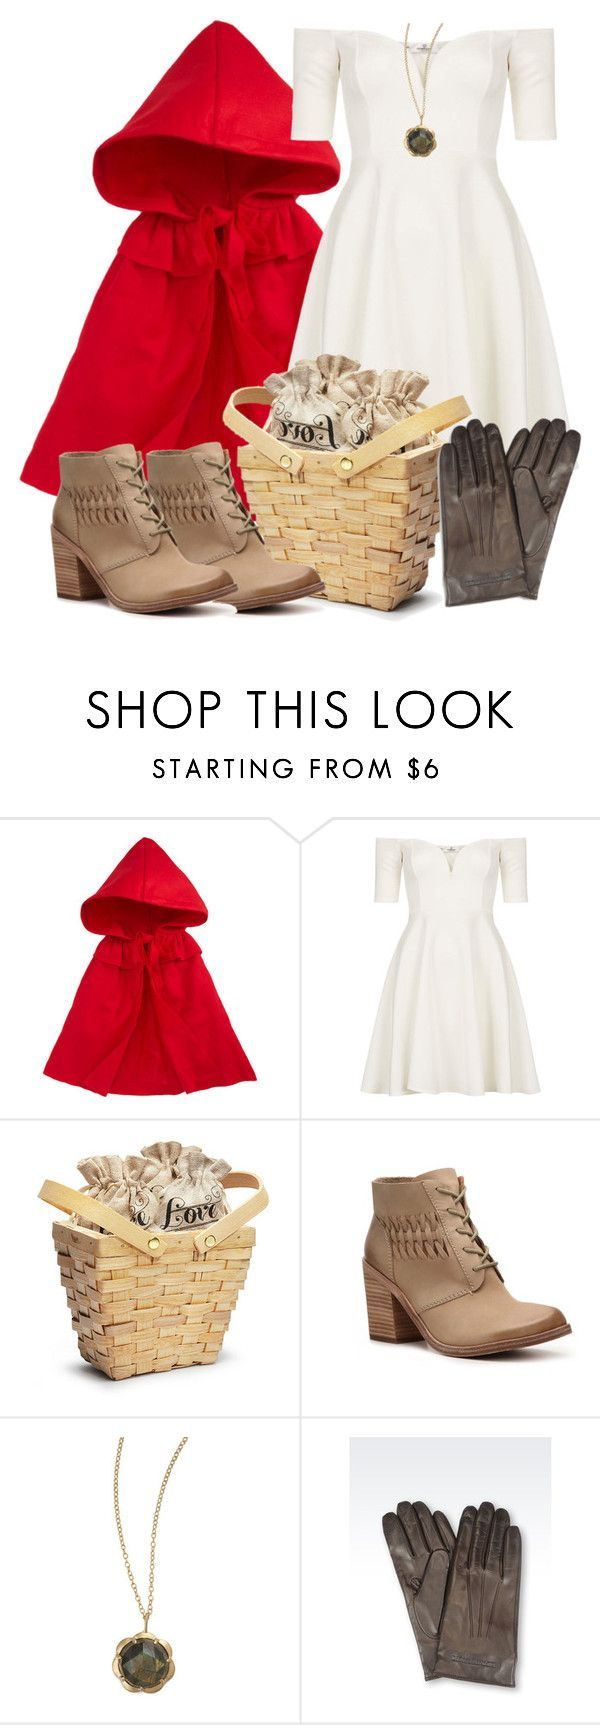 """Halloween costume & makeup - """"Lydia Inspired Halloween Costume (Little Red Riding Hood)"""" by veterization ❤ liked on Polyvore featuring Siaomimi, Oh My Love, Modern Vintage, Jamie Wolf and Emporio Armani"""